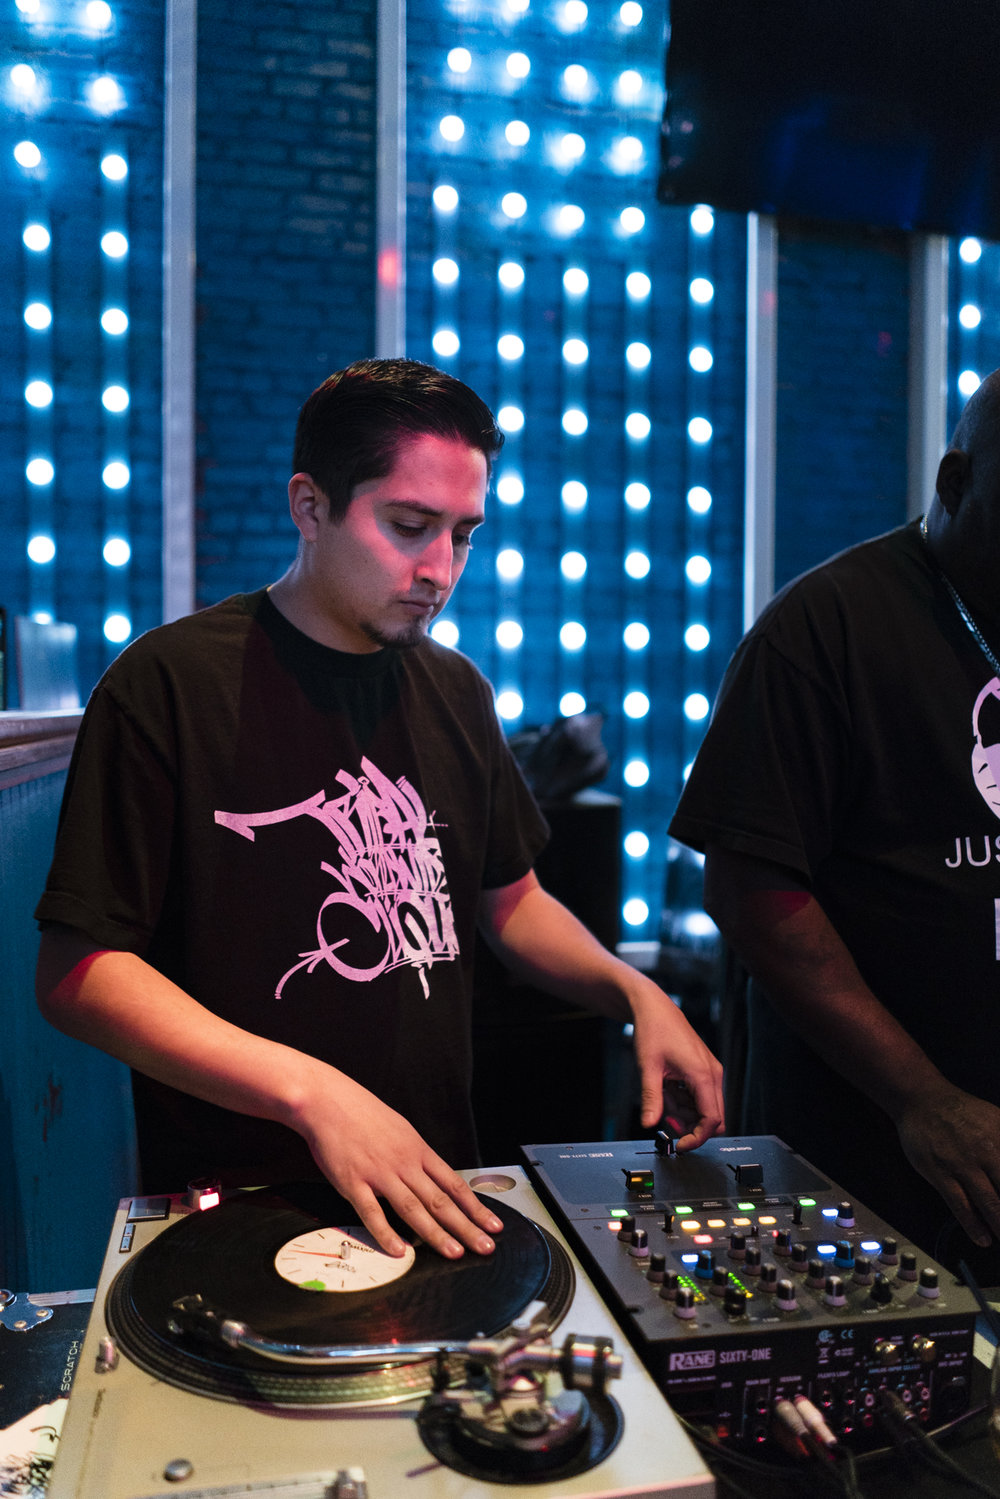 2017_02_02_Skratch Lounge_0101_Export.jpg